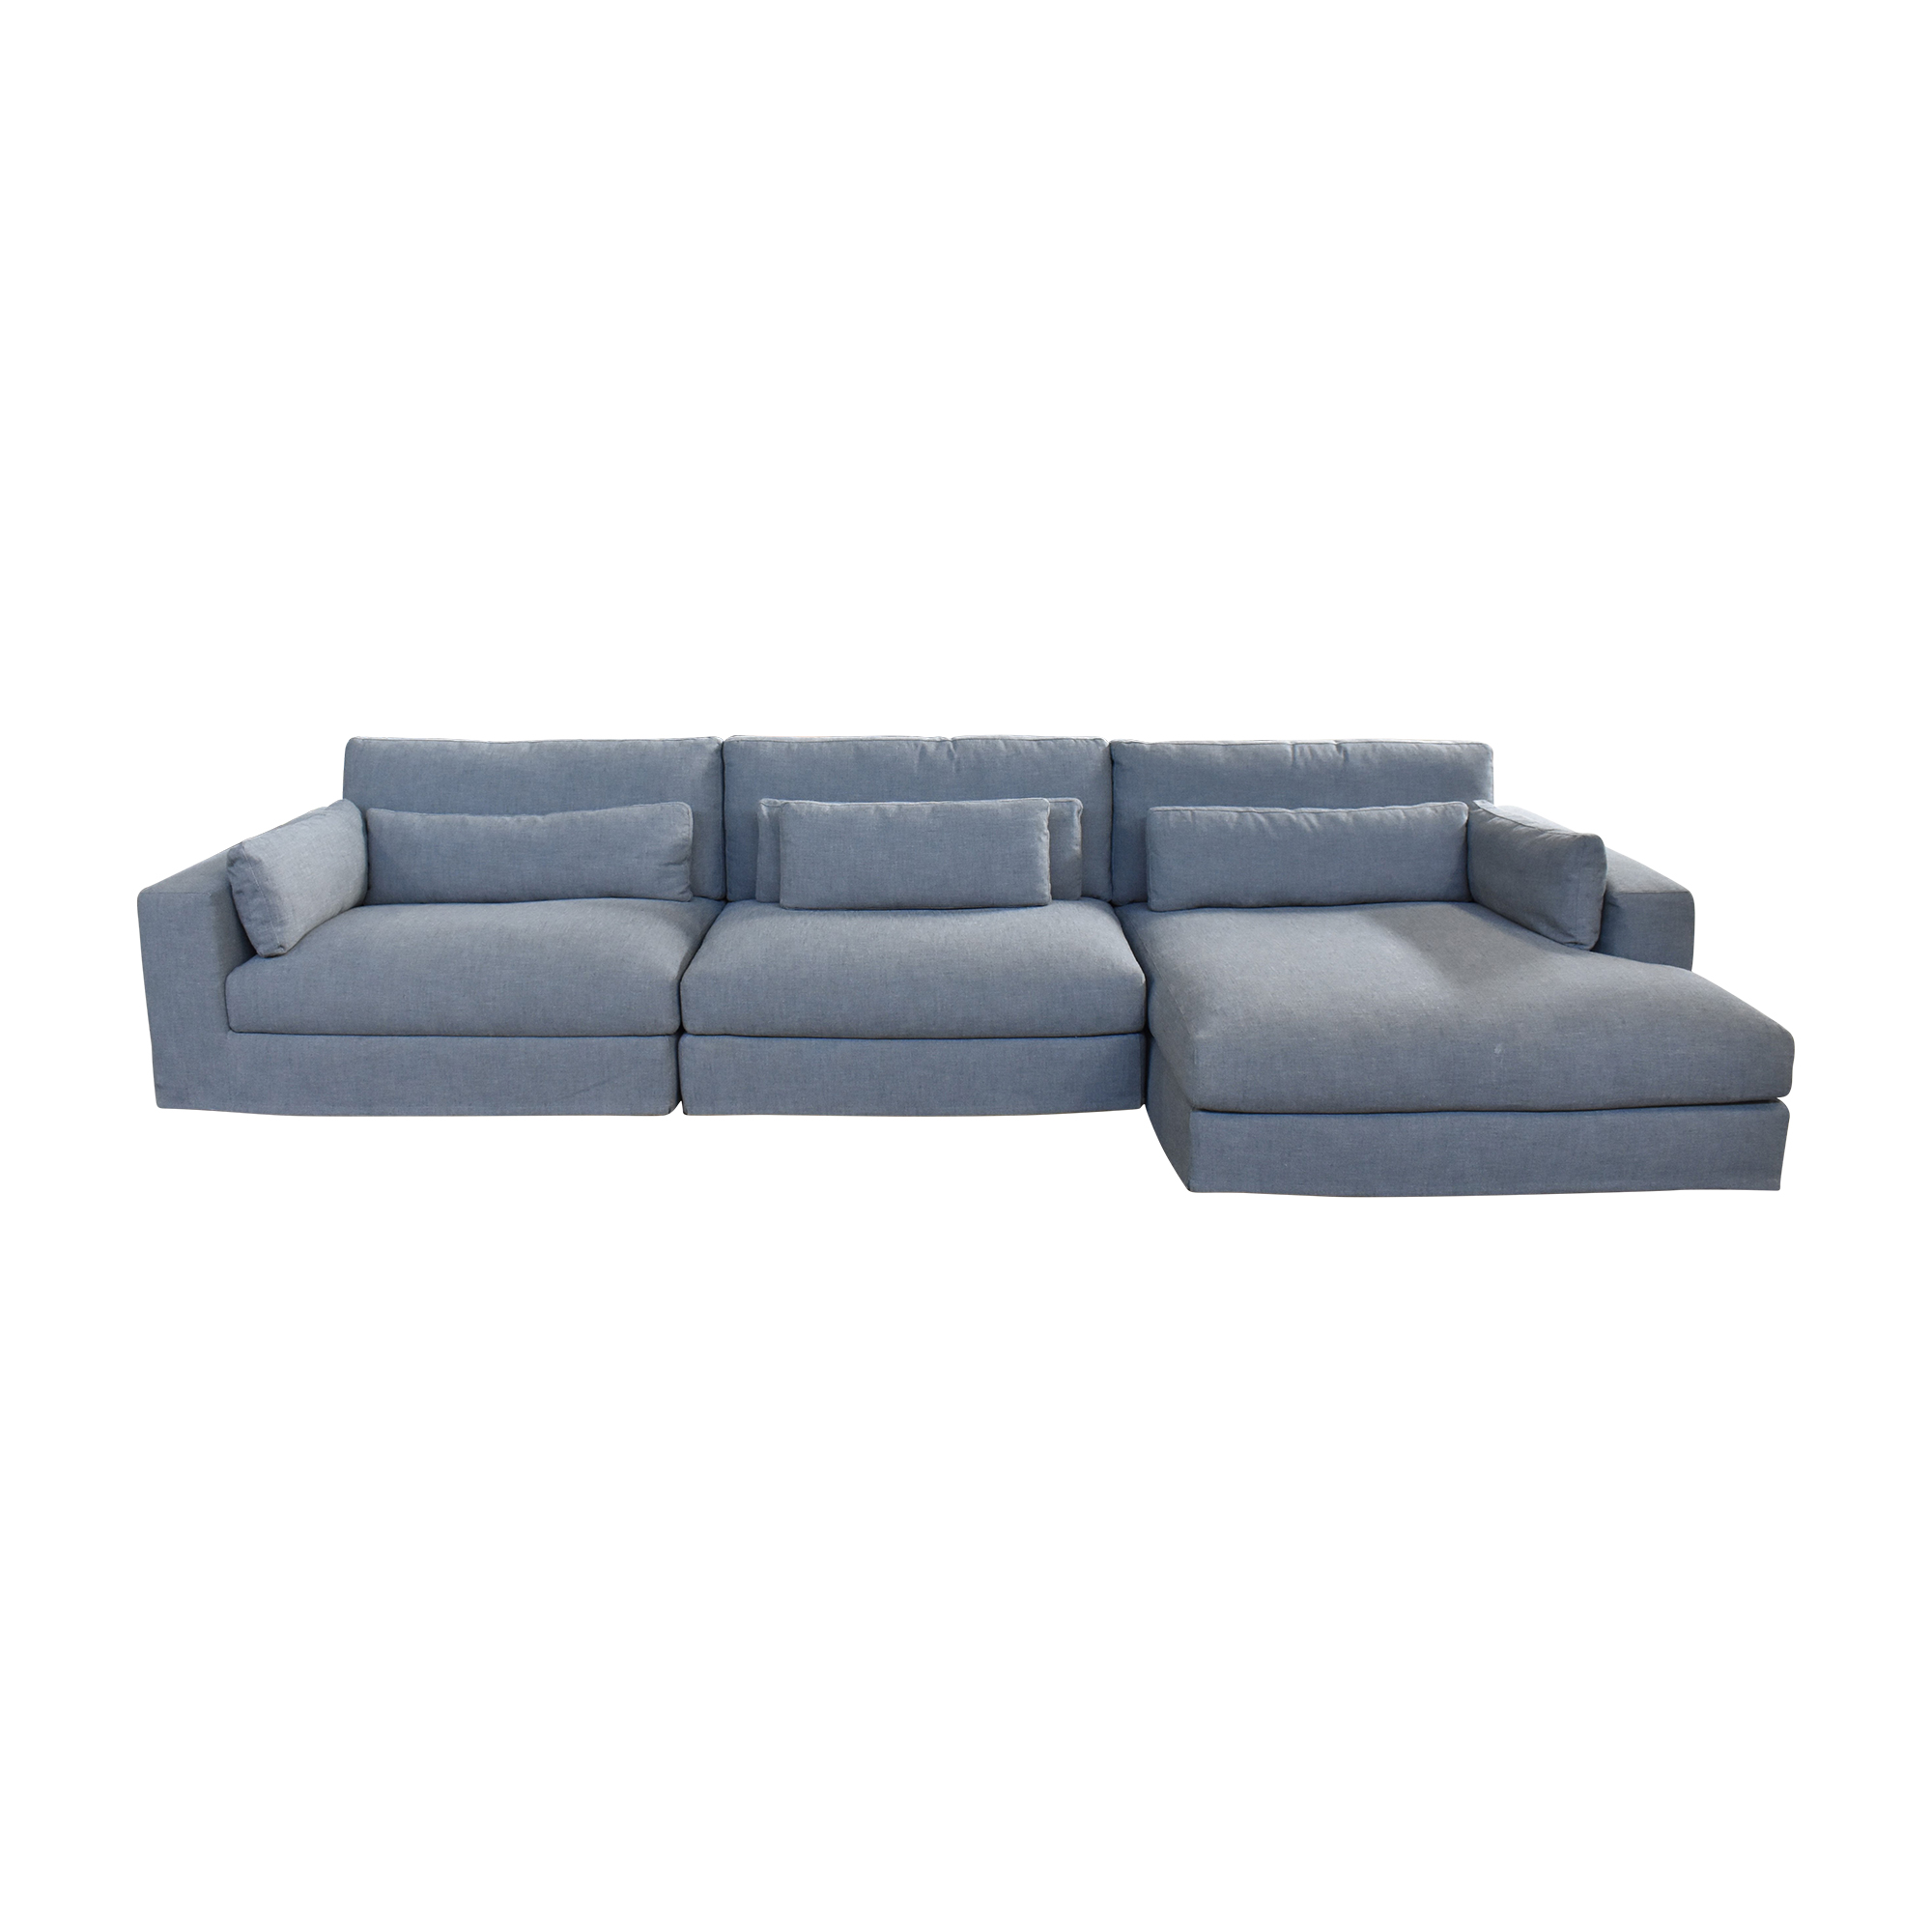 Restoration Hardware Restoration Hardware Lugano Modular Chaise Sectional Sofa for sale